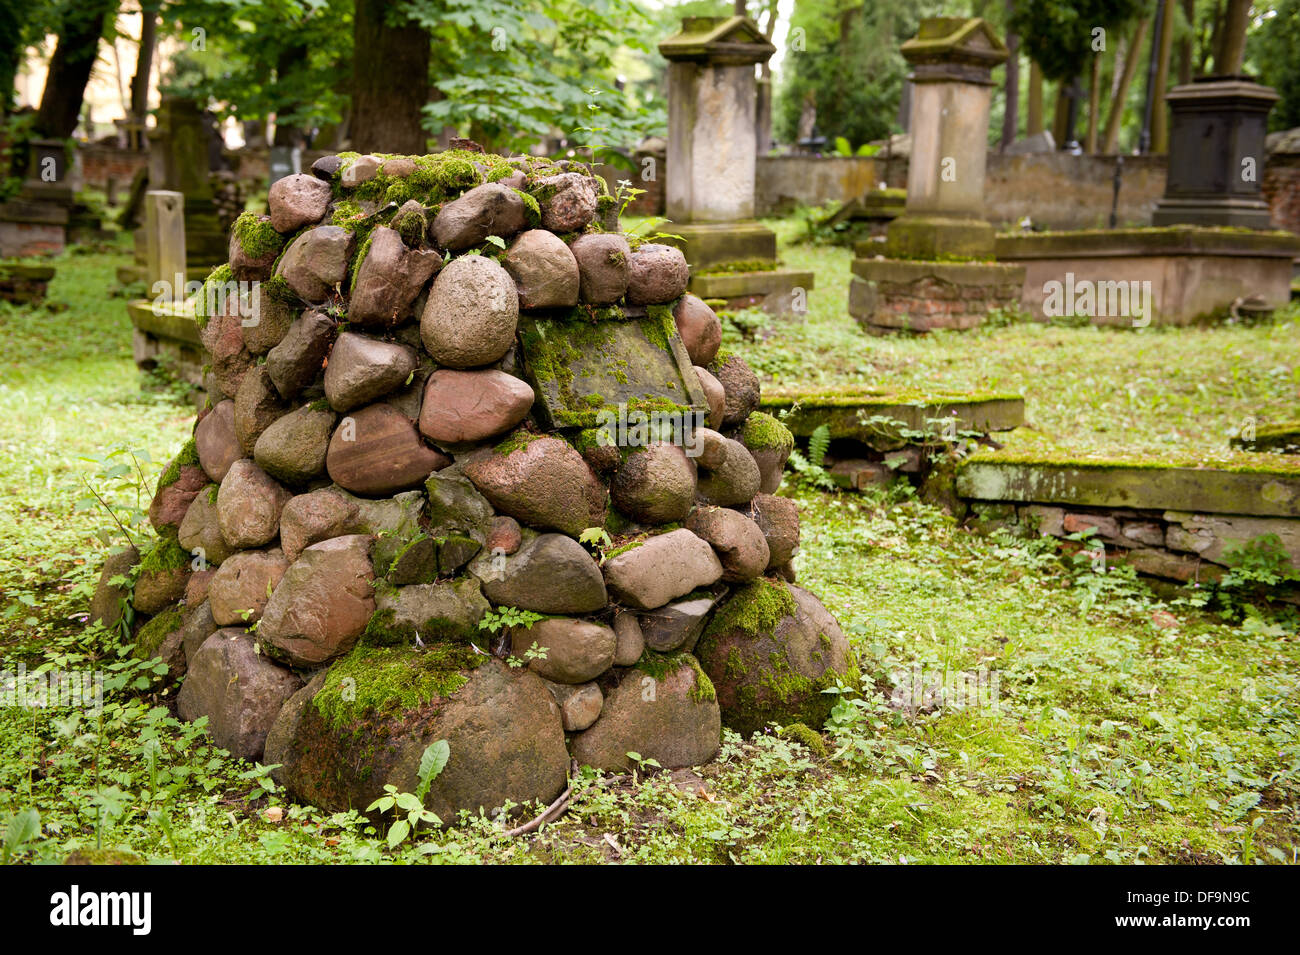 Stones On Grave Stock Photos & Stones On Grave Stock Images - Alamy